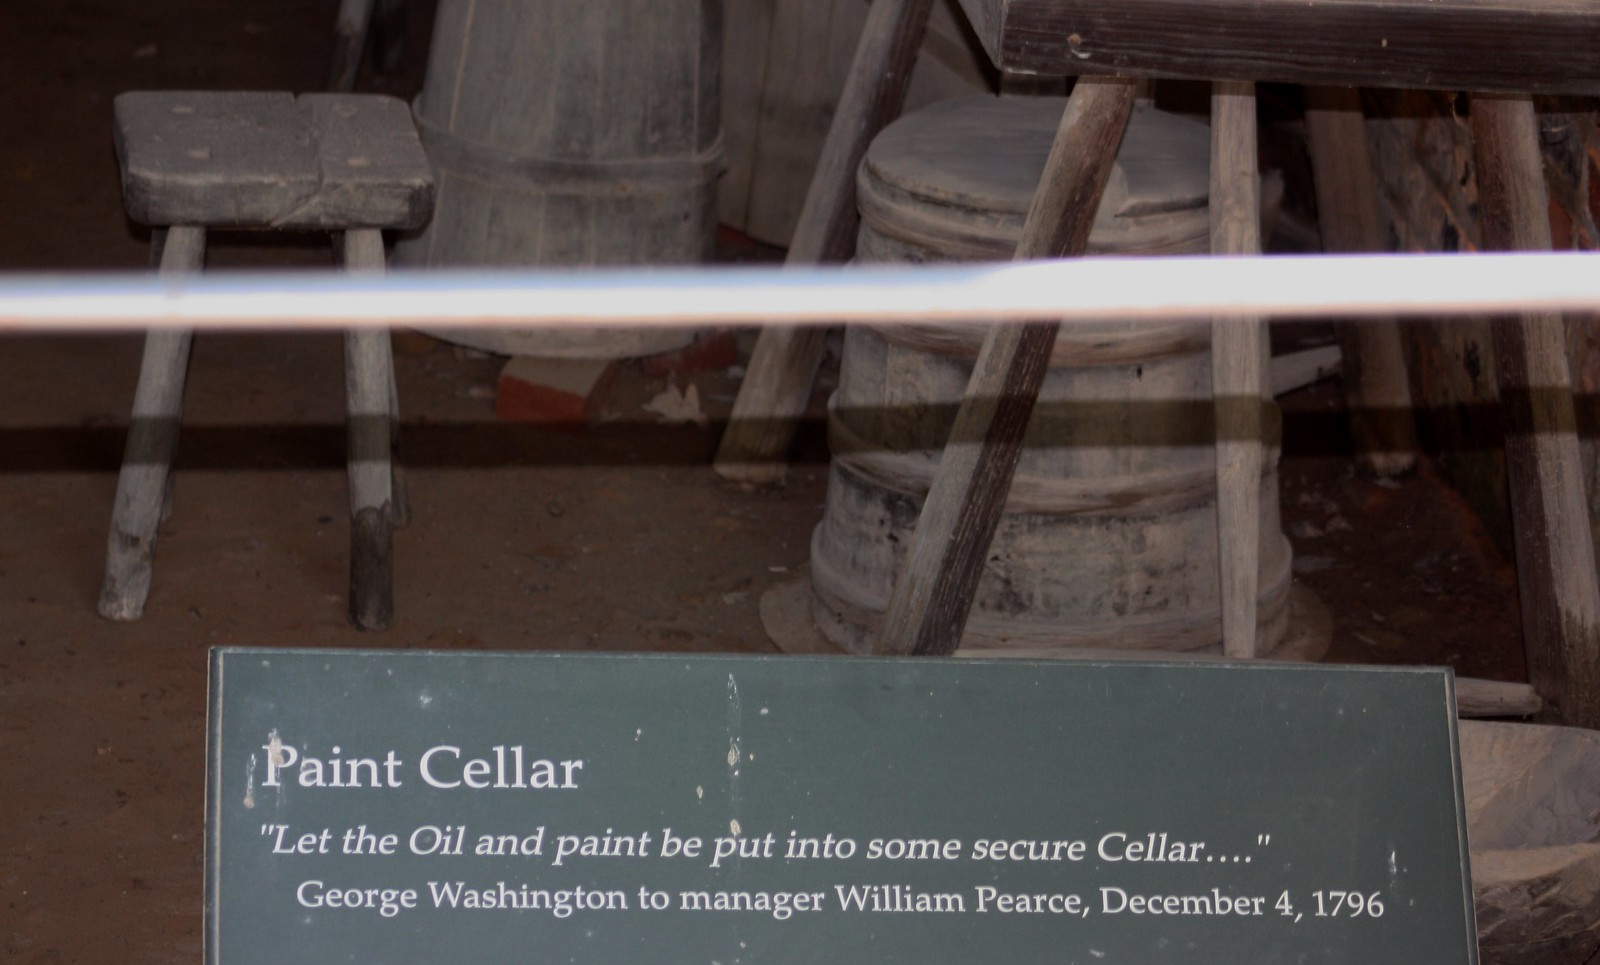 Mount Vernon Paint Cellar